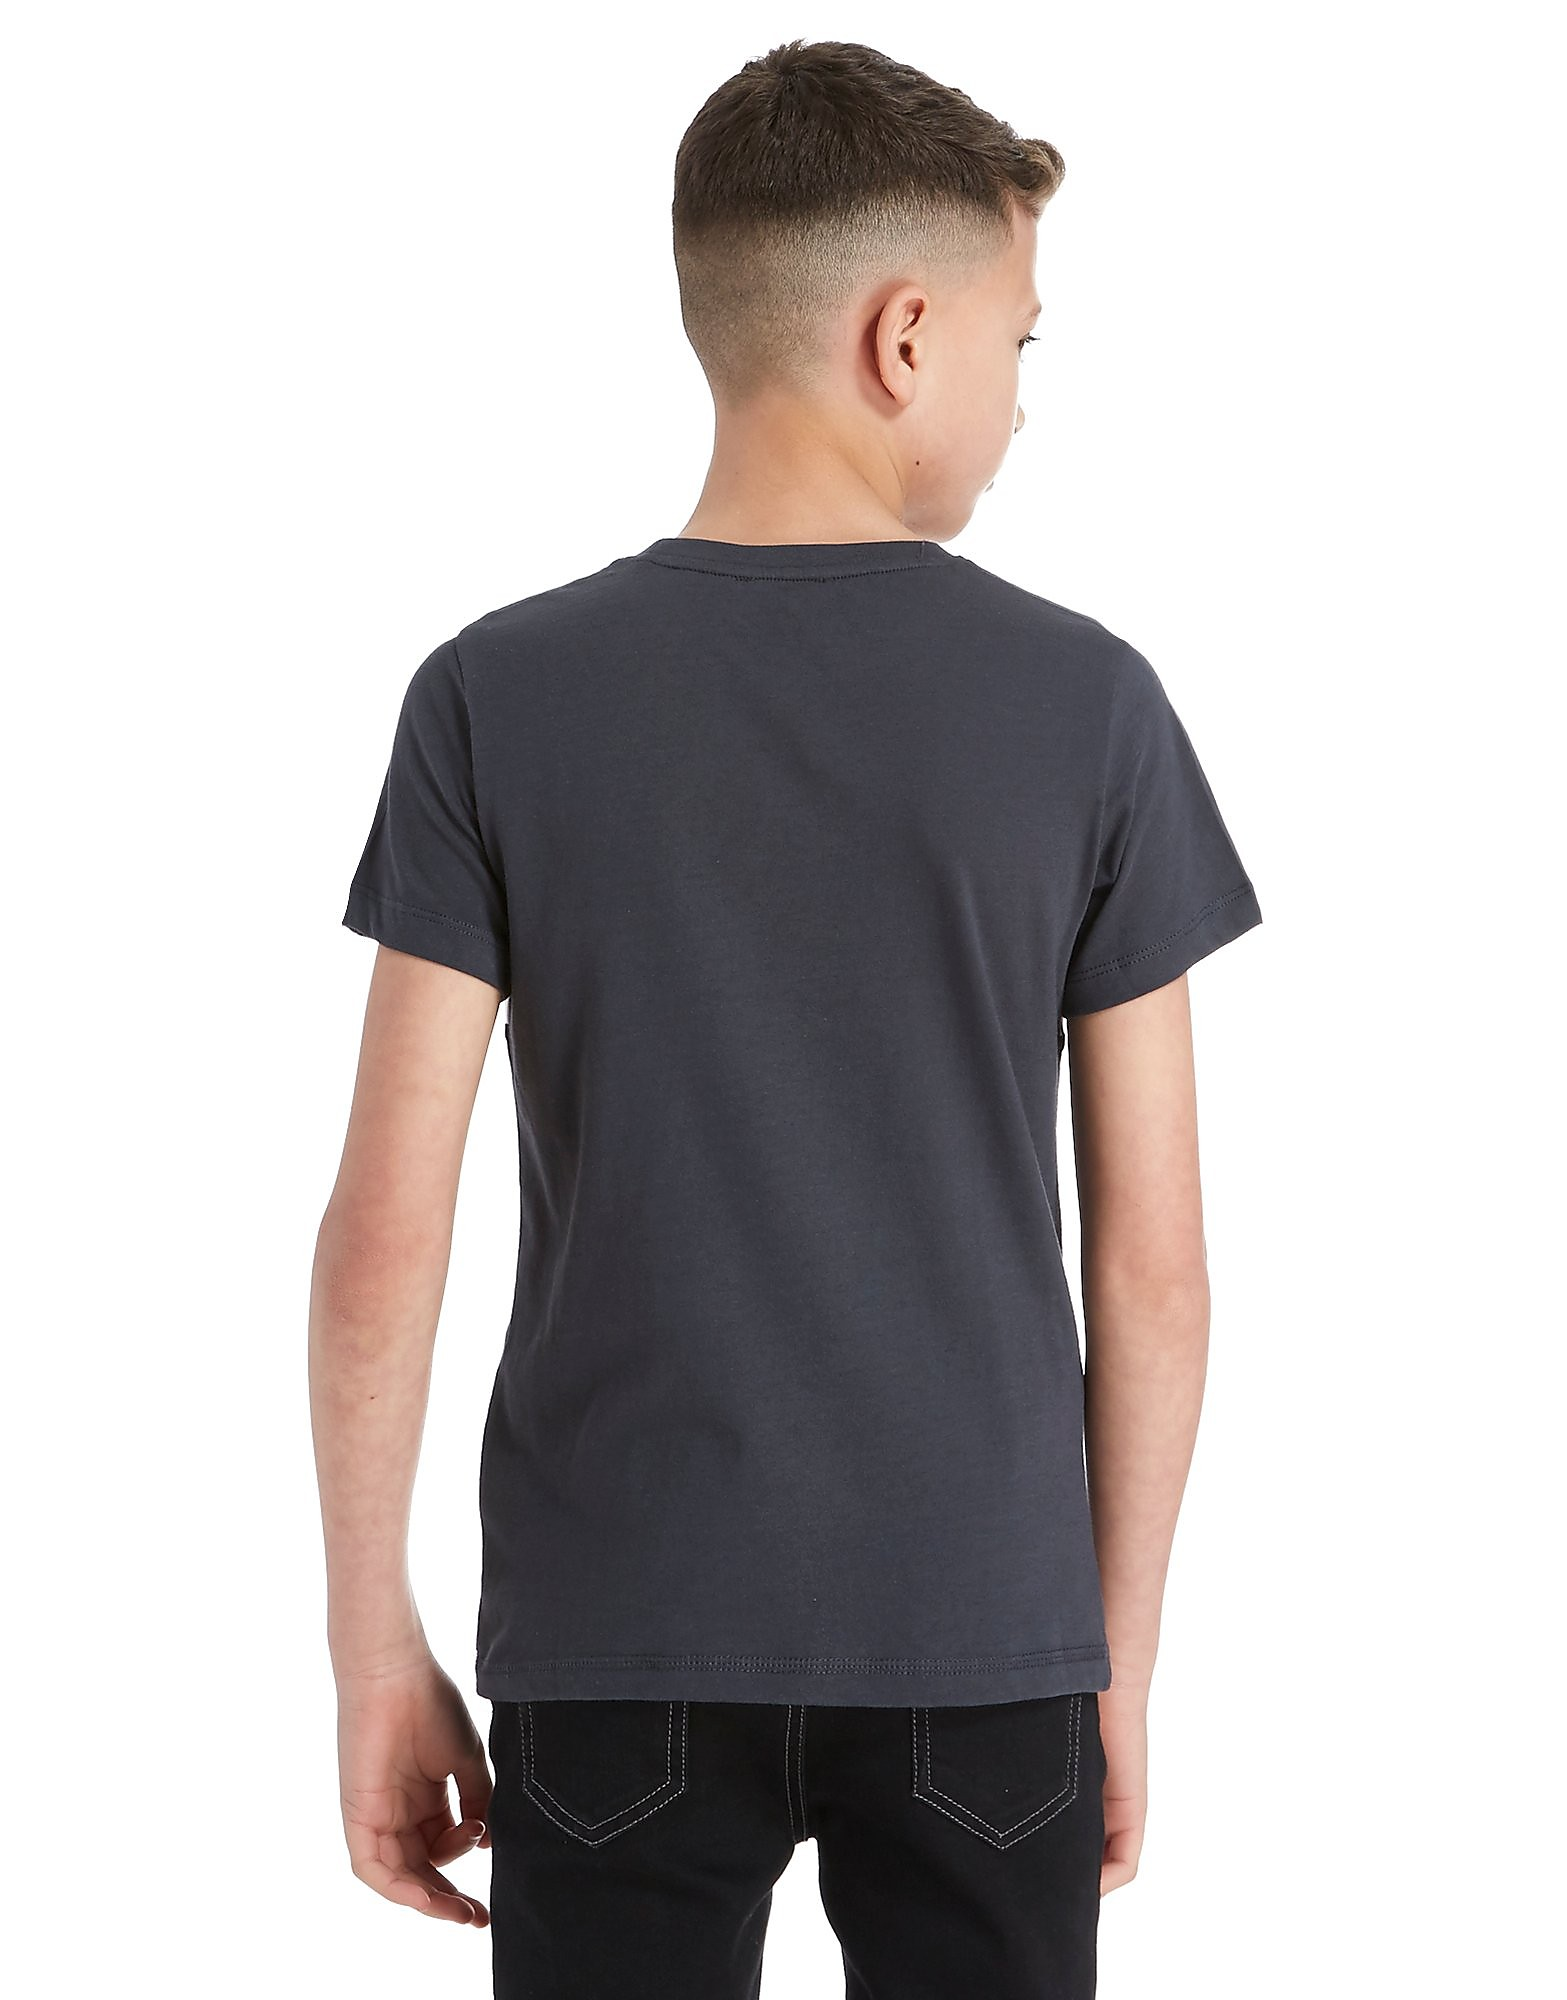 Emporio Armani EA7 Panel logo T-Shirt Junior